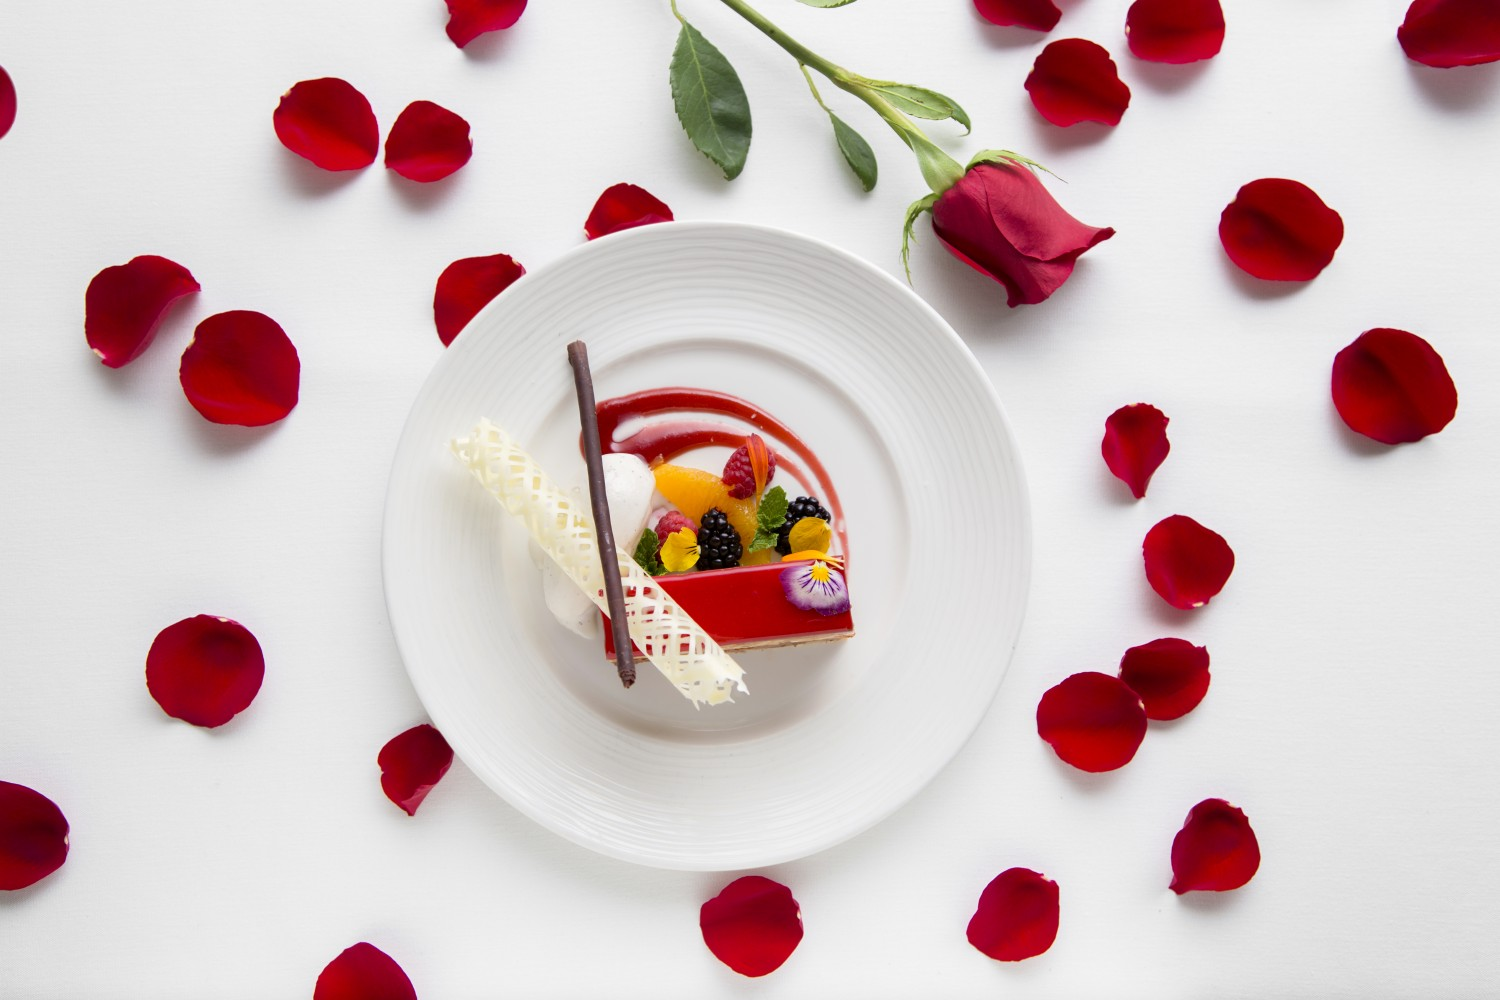 The Sokolatina dessert, with chocolate mousse, almond cake, and raspberry coulis. (Samira Bouaou/Epoch Times)